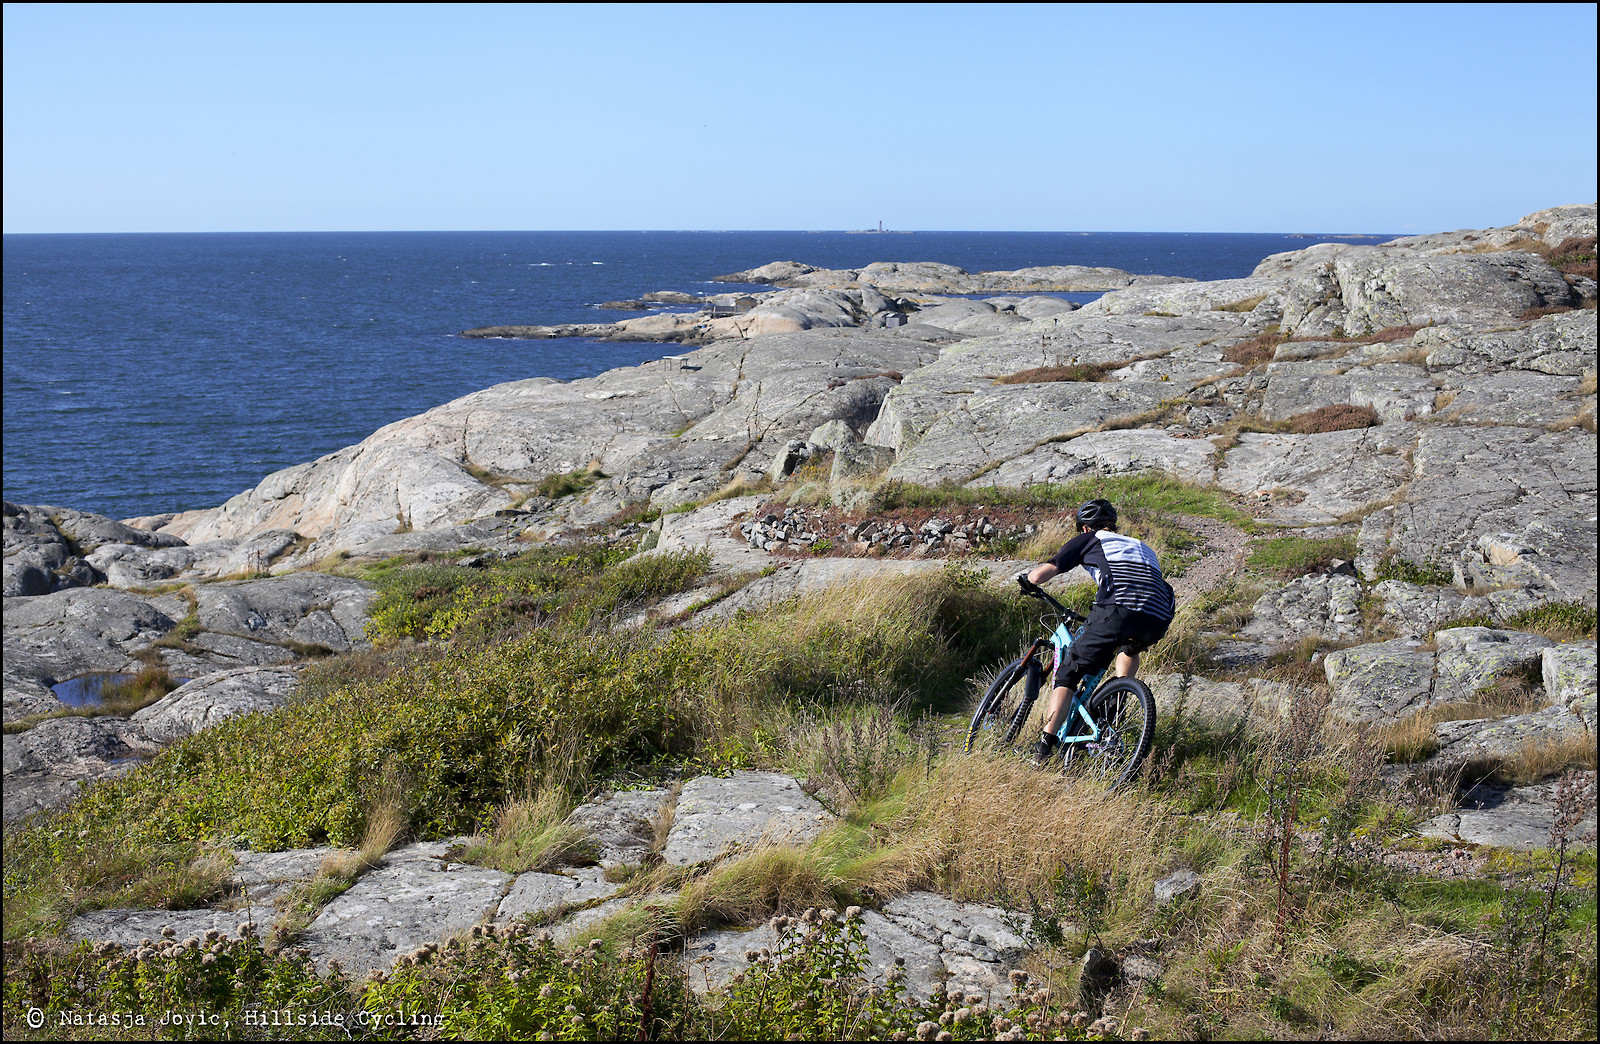 Scenic ride on Marstrand Island - Hillside Cycling - Mountain Biking Pictures - Vital MTB